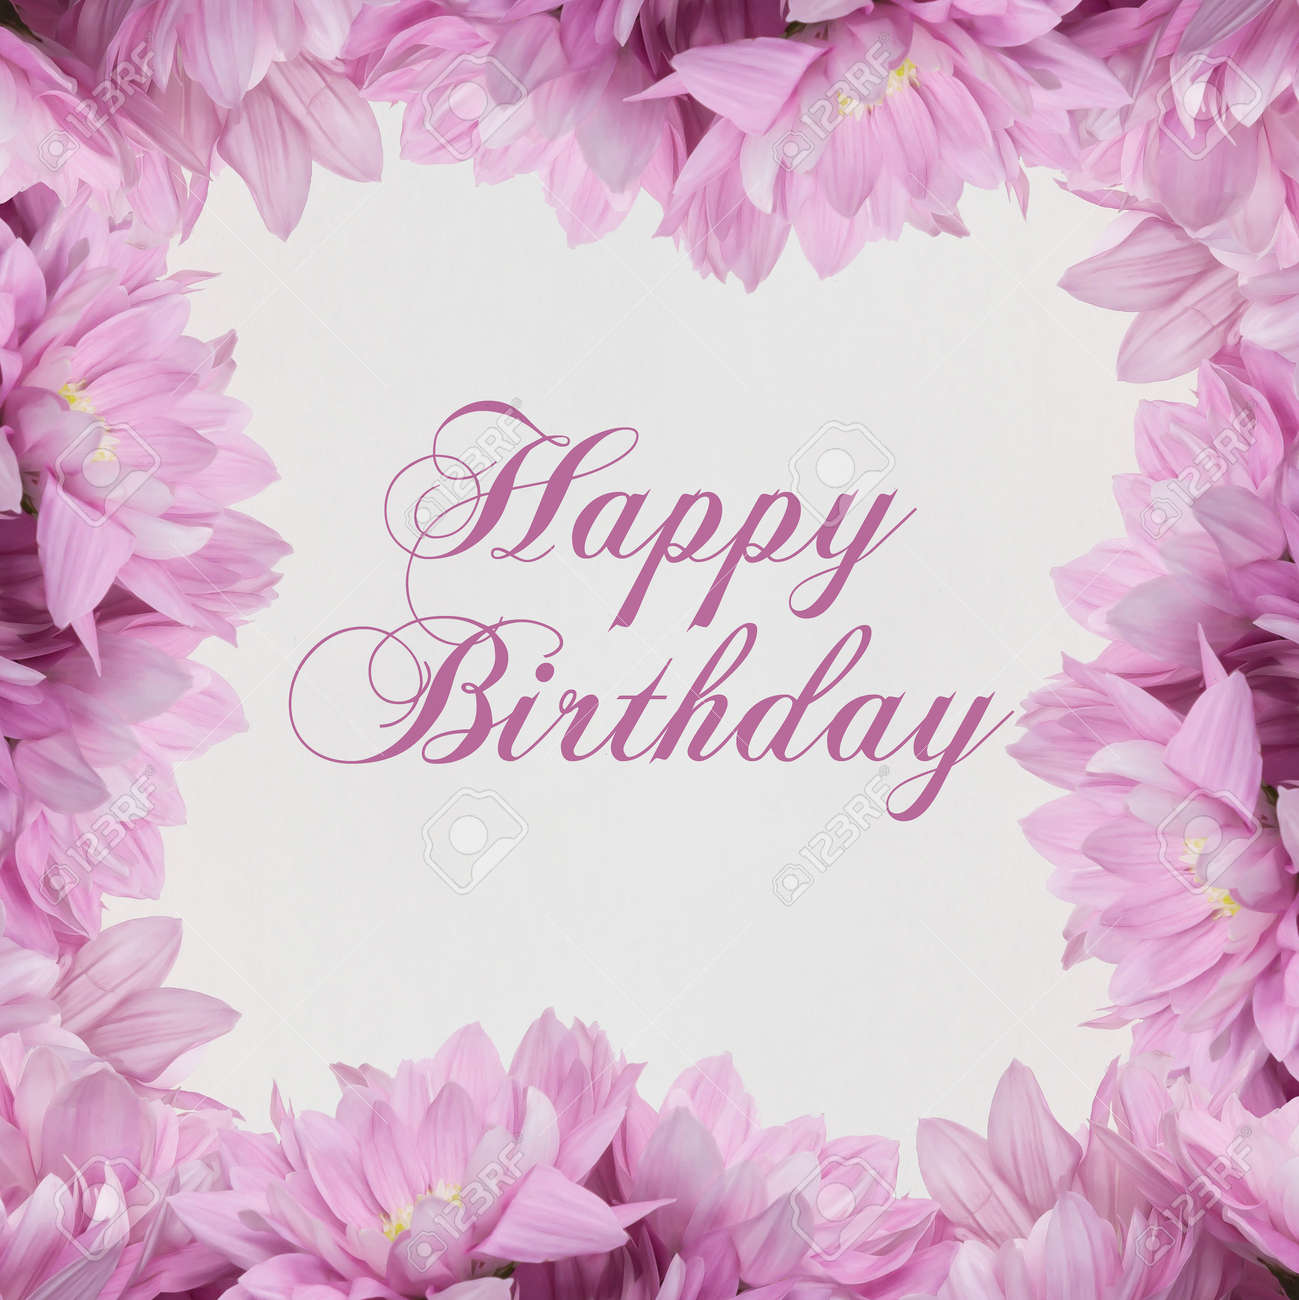 Happy birthday flowers on white background stock photo picture and happy birthday flowers on white background stock photo 41368006 izmirmasajfo Image collections